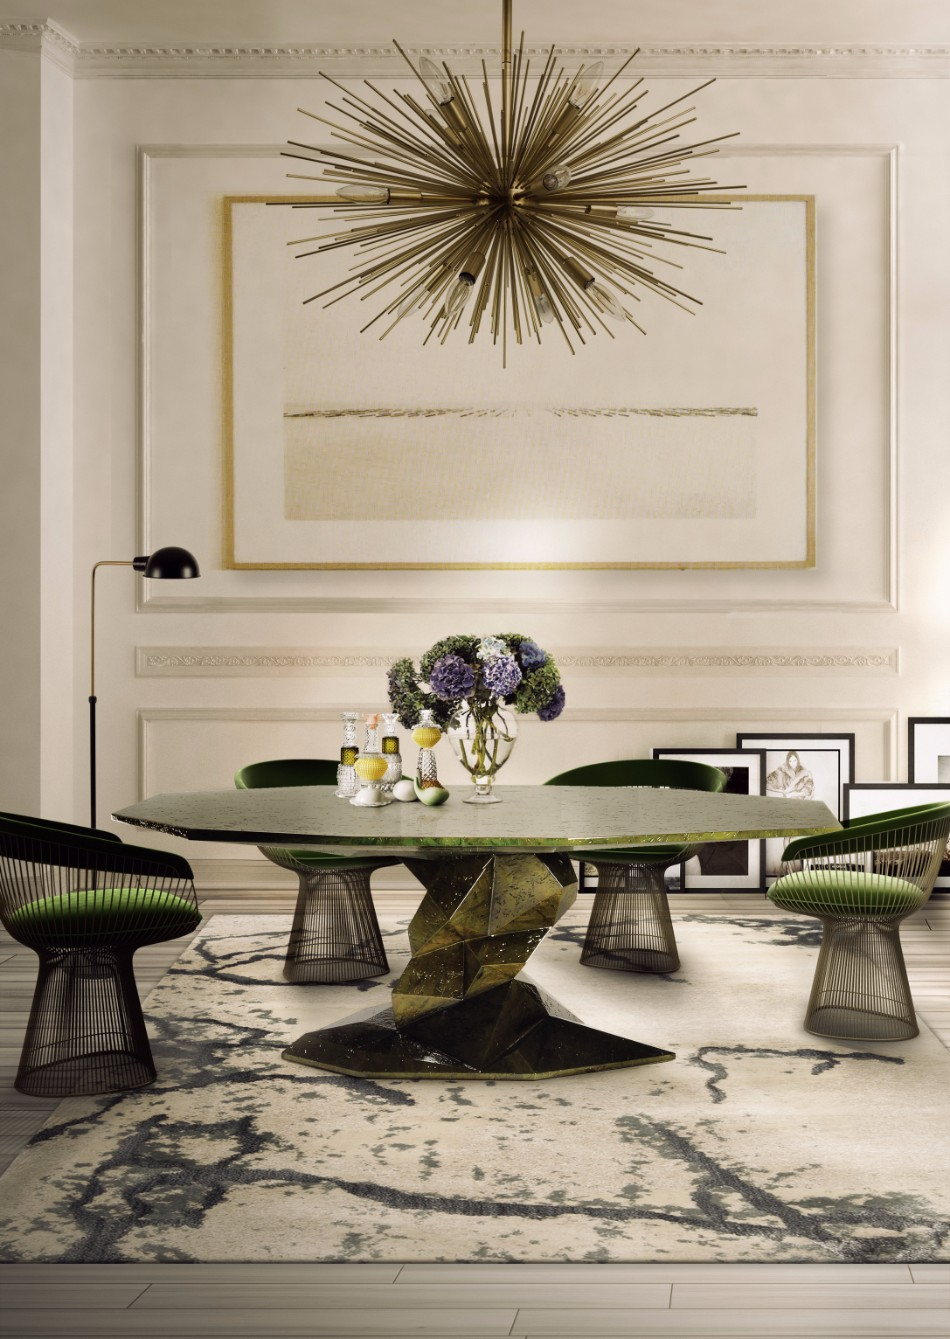 7 Modern Dining Tables By Boca do Lobo's Limited Edition Collection | www.bocadolobo.com #diningtables #tables #diningroom #thediningroom #diningarea #diningareadesign #roomdesign #productdesign #creativedesign #luxury #luxurious #luxurydiningtables #luxurybrands #famousbrands #limitededition @moderndiningtables modern dining tables 7 Modern Dining Tables By Boca do Lobo's Limited Edition Collection 7 Modern Dining Tables By Boca do Lobo   s Limited Edition Collection 3